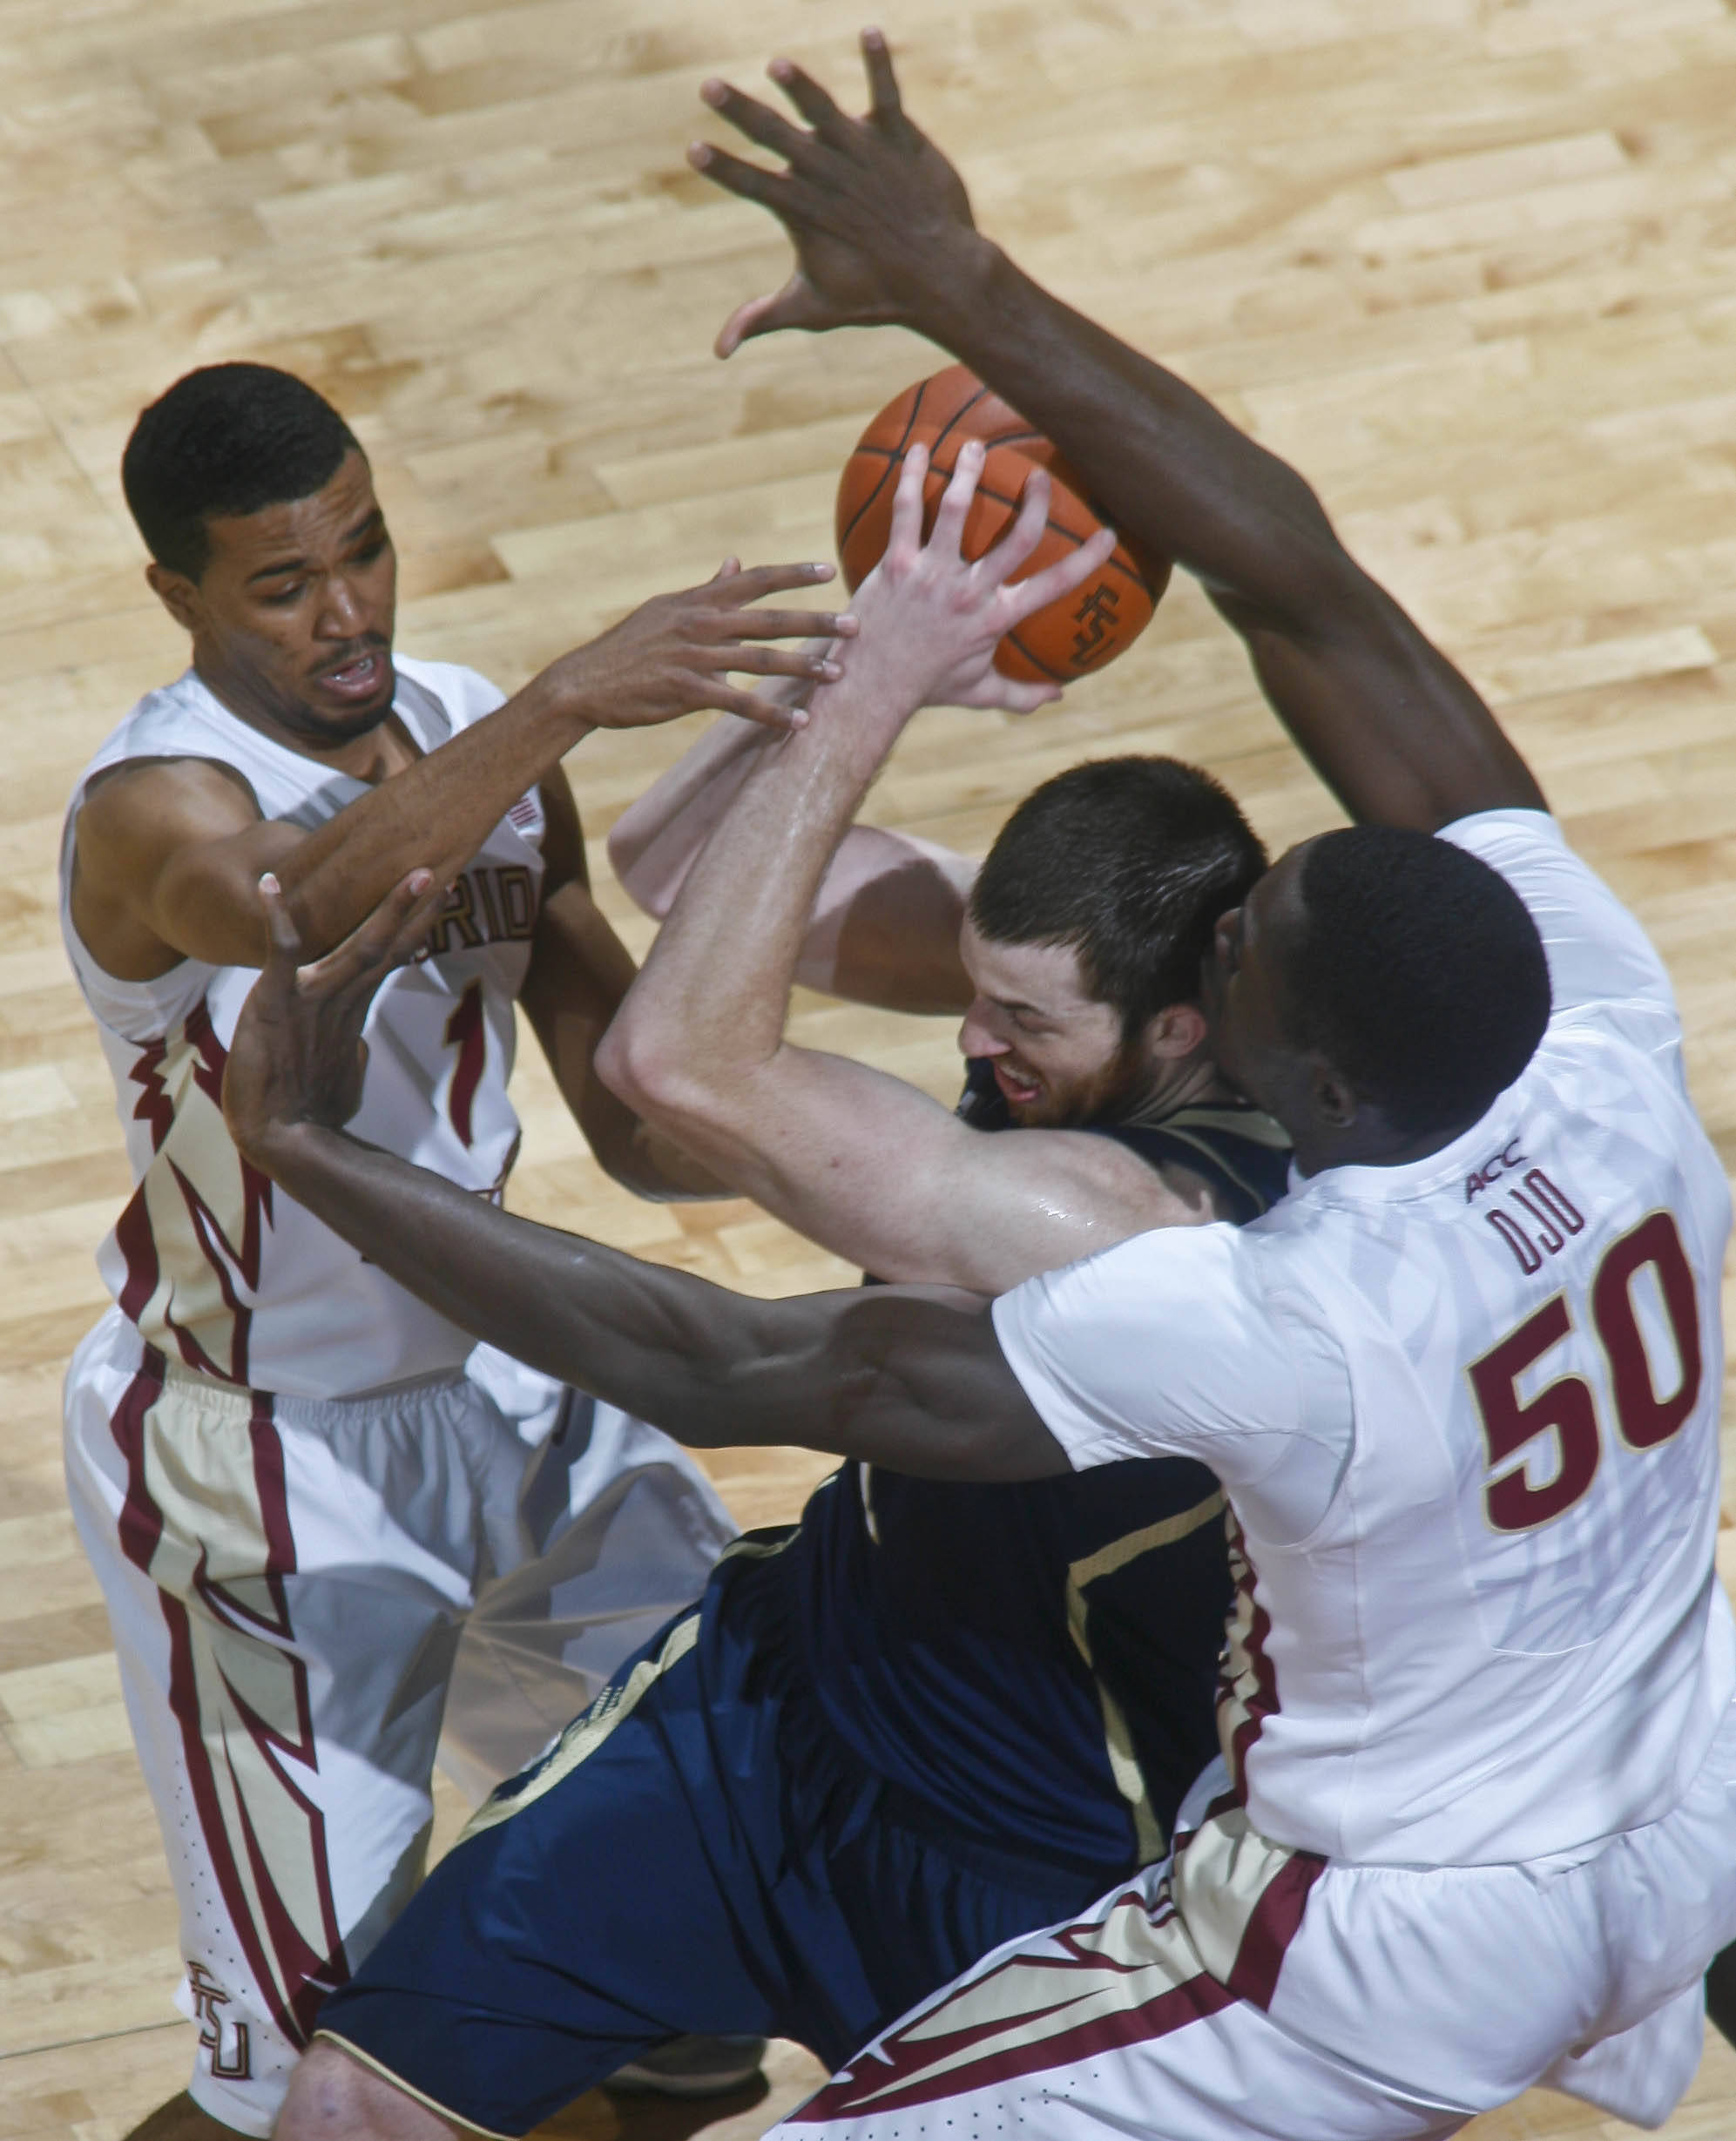 Jan 21, 2014; Tallahassee, FL, USA; Notre Dame Fighting Irish center Garrick Sherman (11) gets double-teamed by Florida State Seminoles guard Devon Bookert (1) and center Michael Ojo (50)in the first half at the Donald L. Tucker Center. Mandatory Credit: Phil Sears-USA TODAY Sports